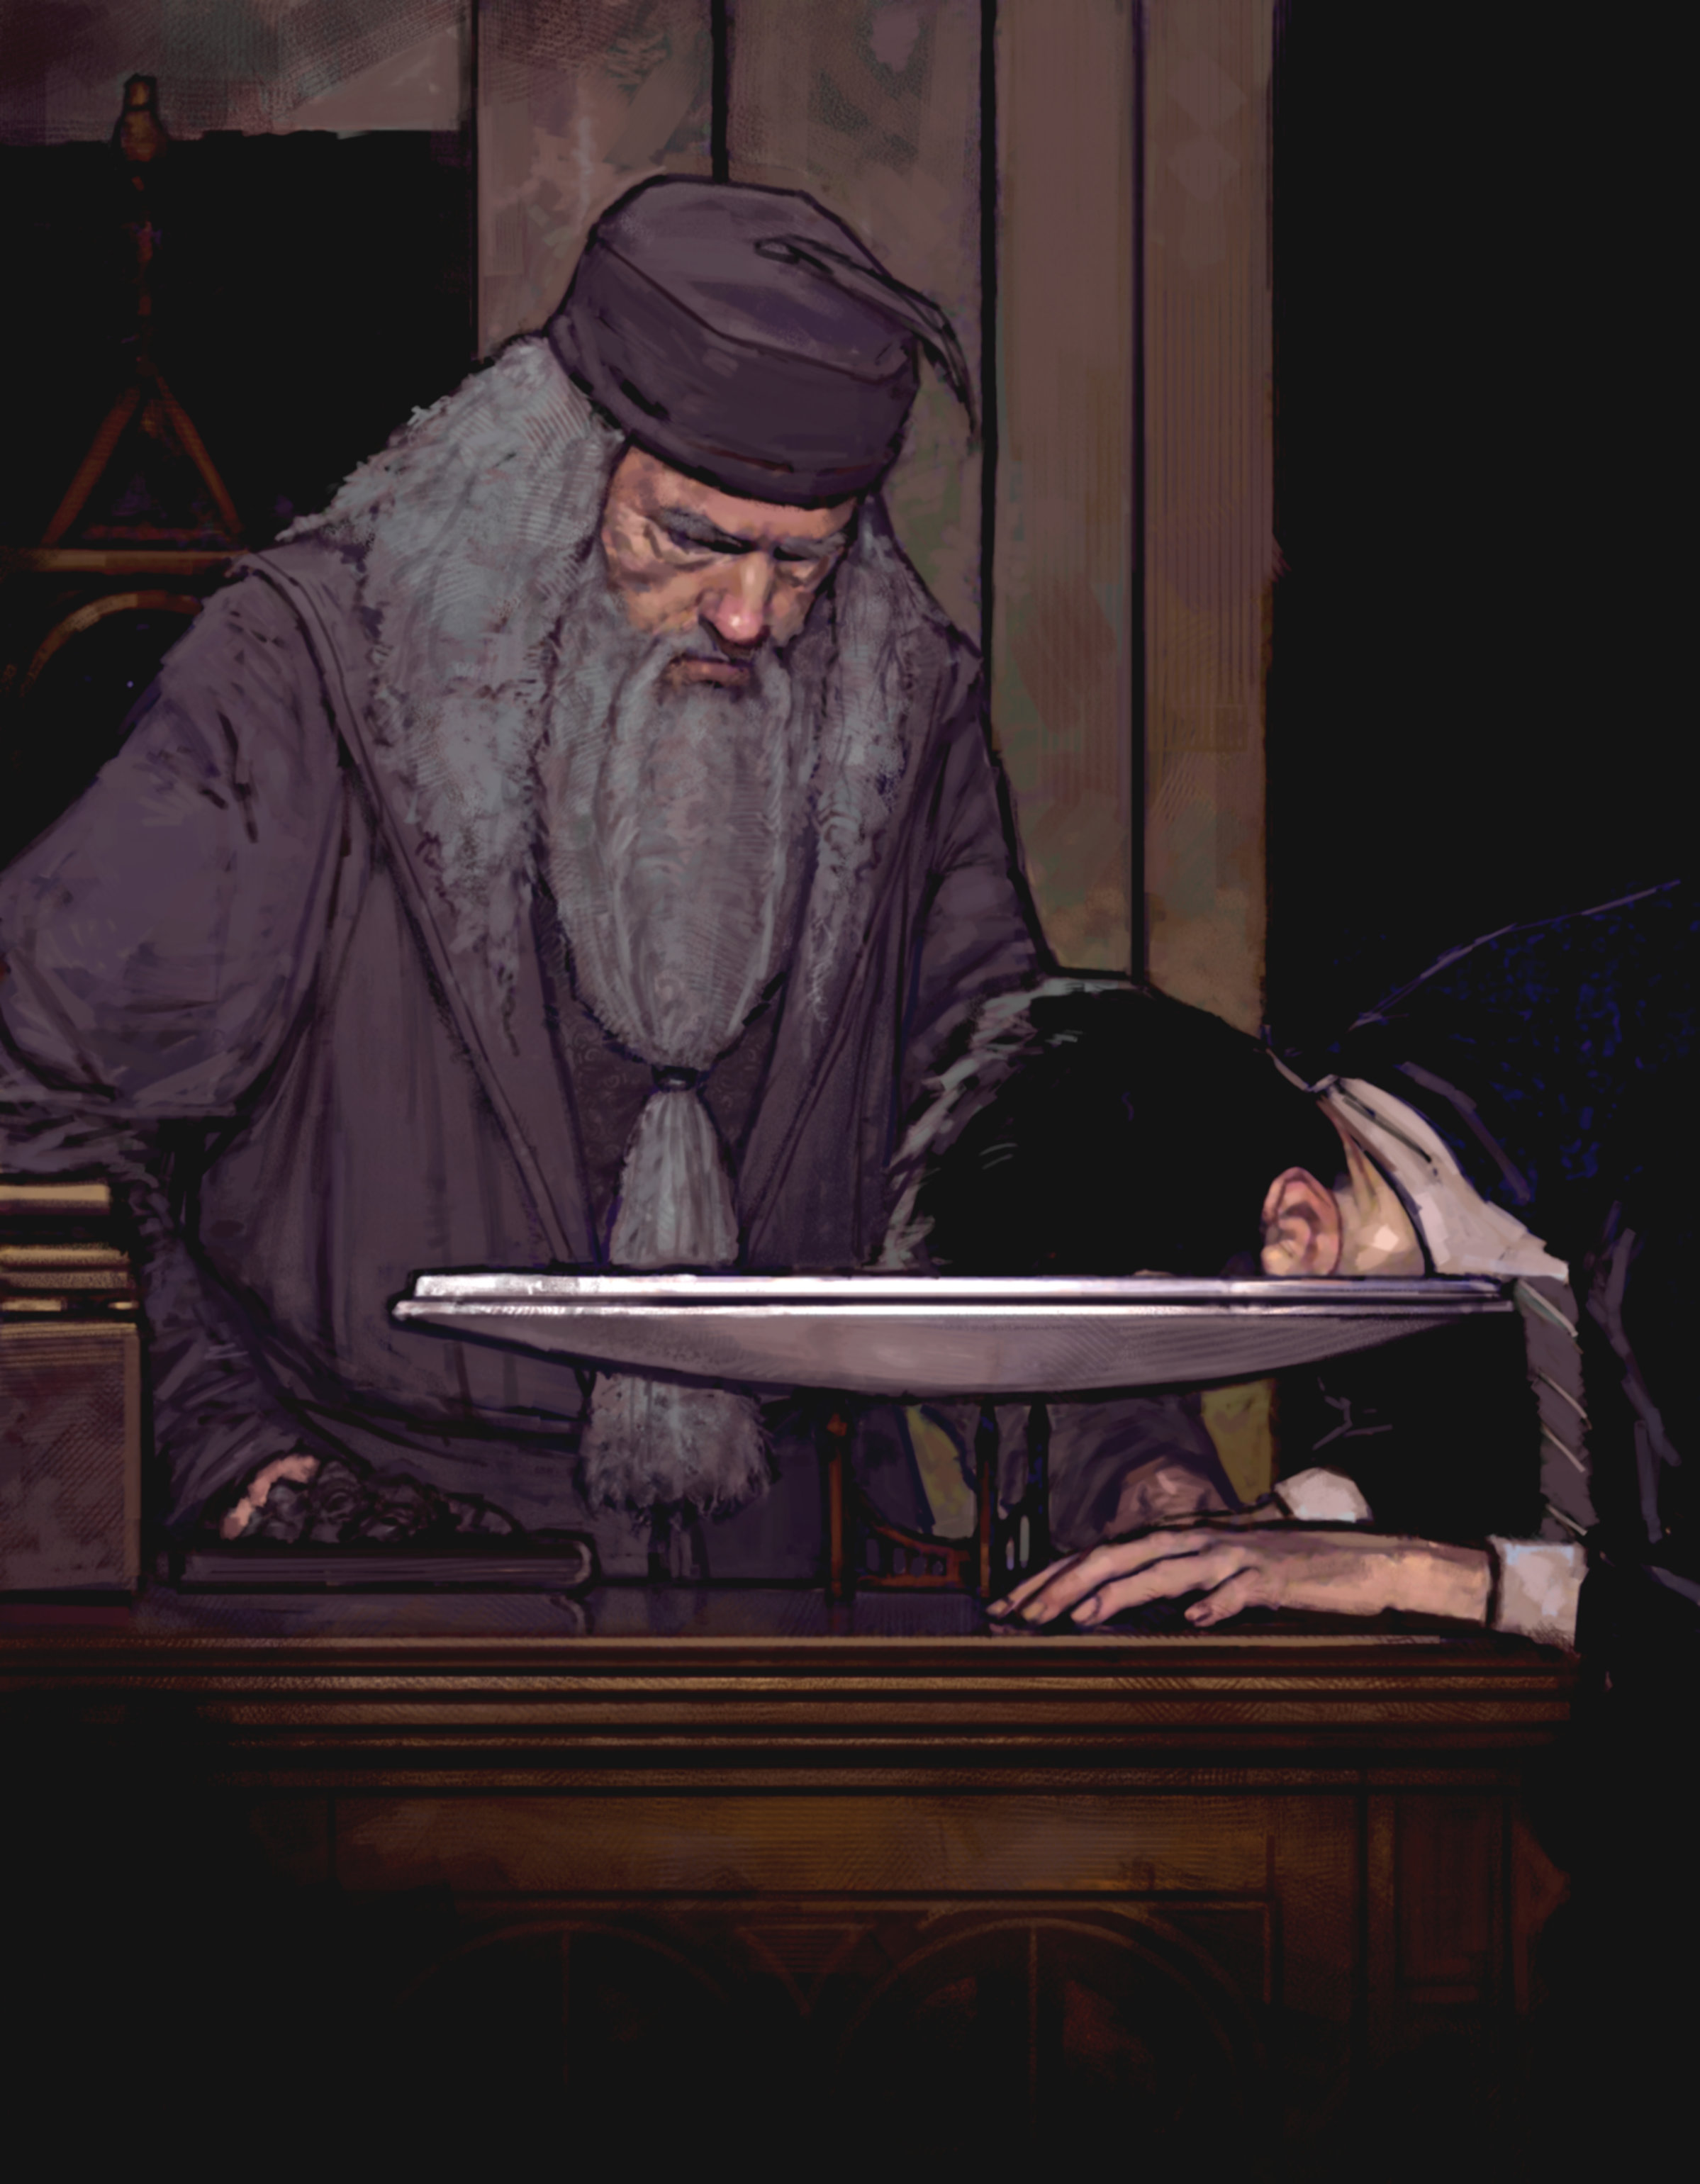 An illustration of Harry using Dumbledore's Pensieve in order to learn about Voldemort